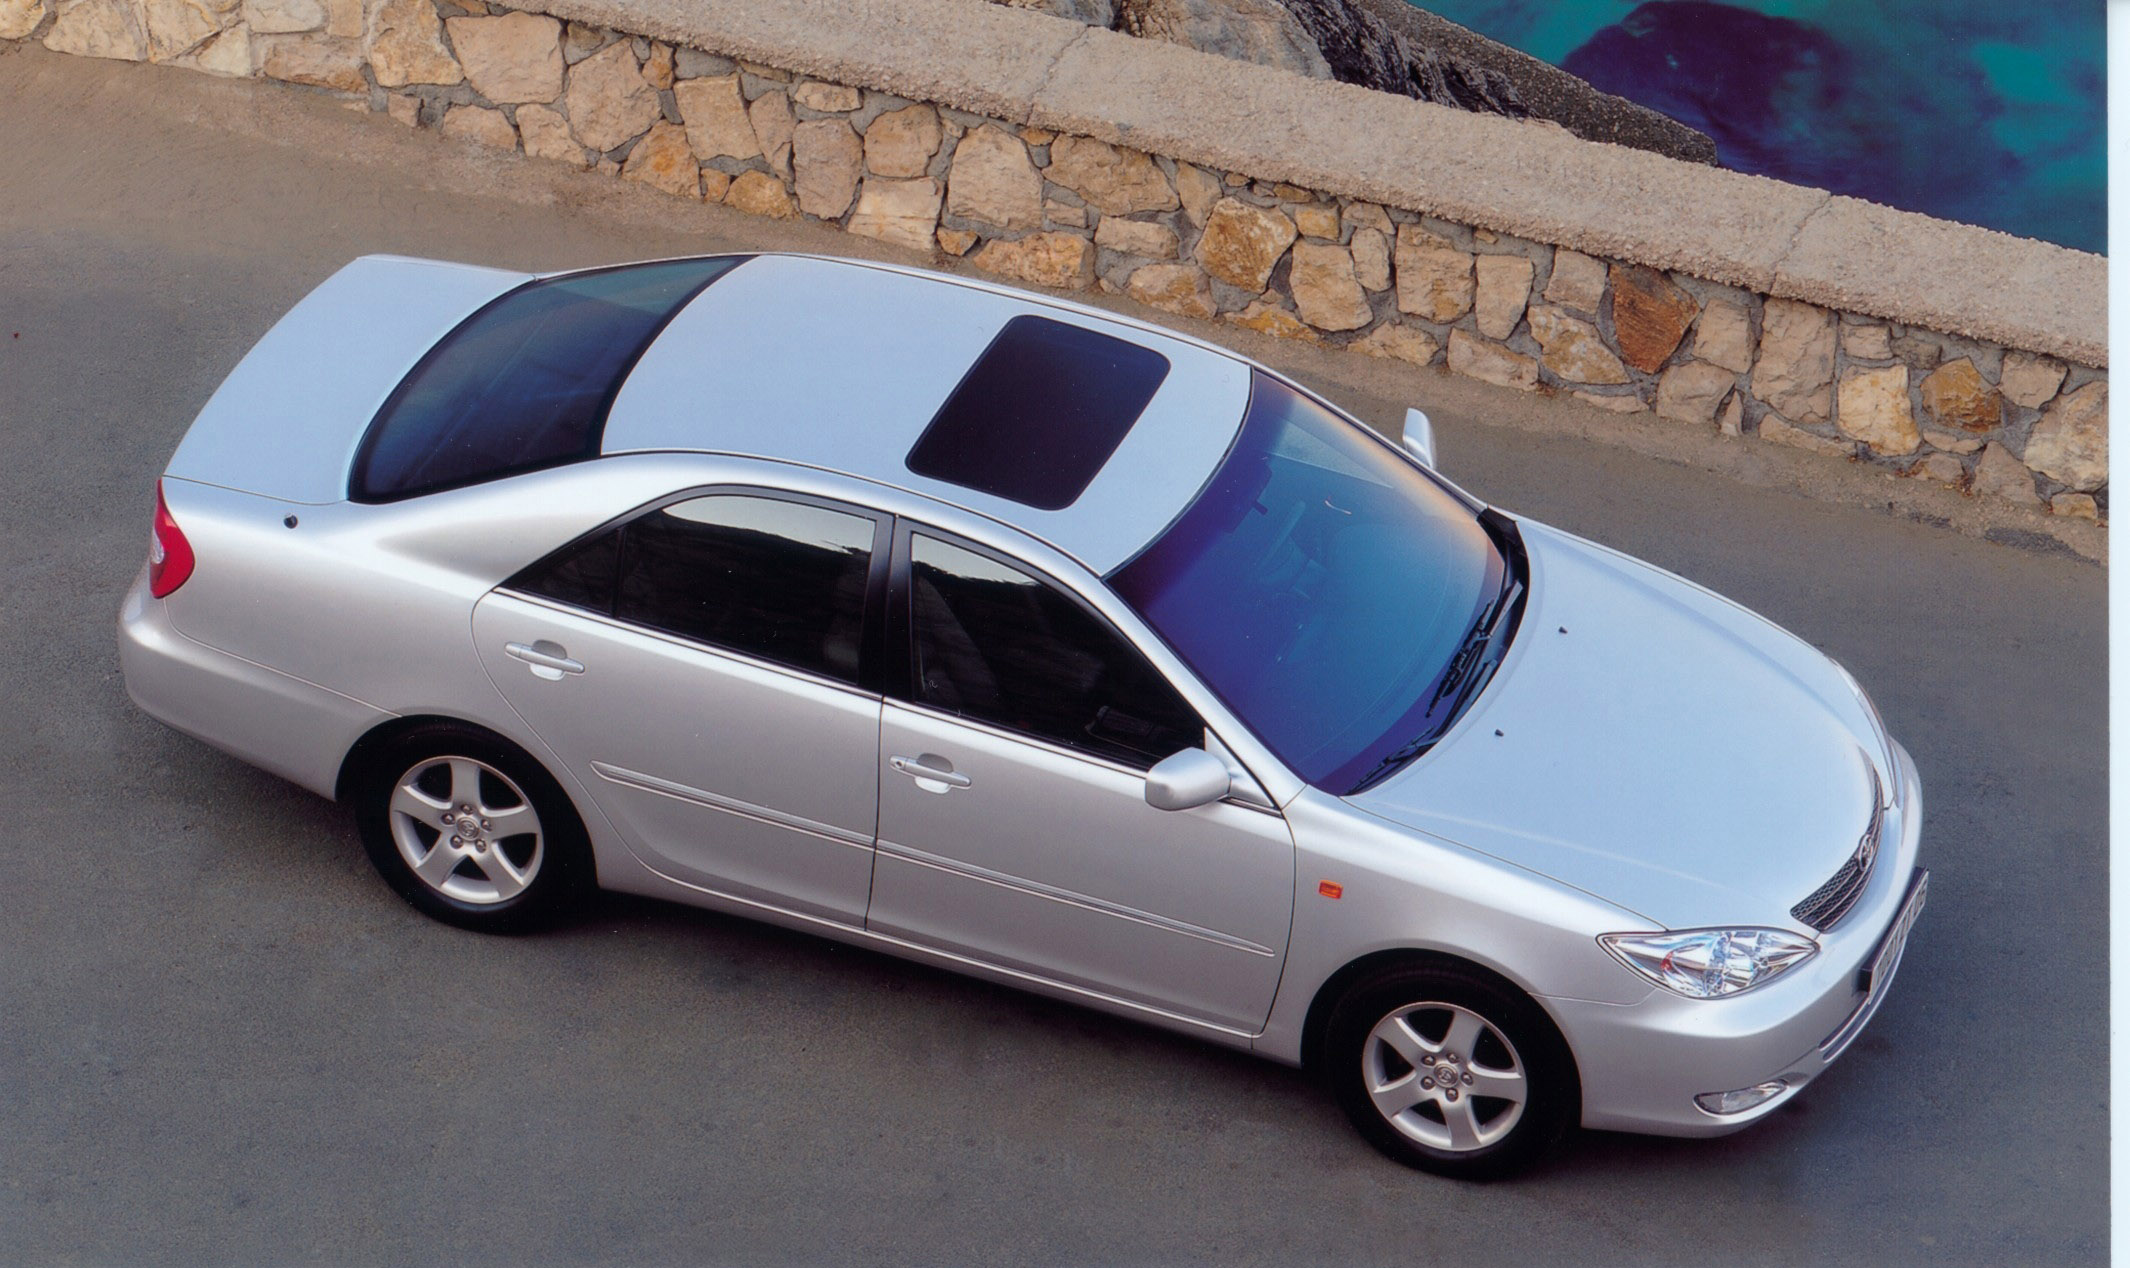 2001 toyota camry picture 76901. Black Bedroom Furniture Sets. Home Design Ideas